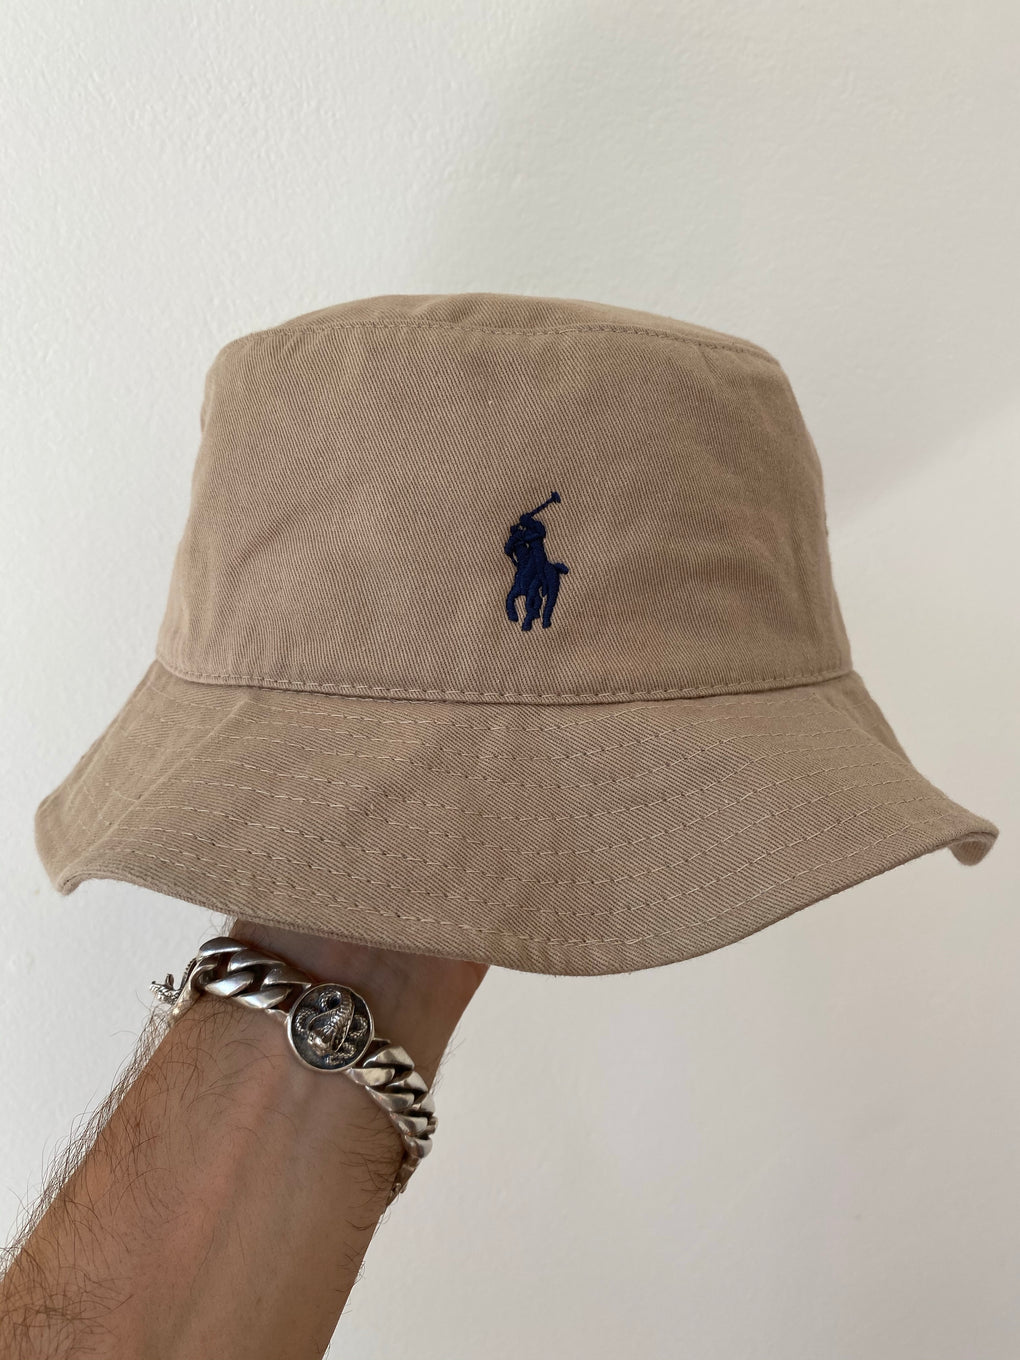 POLO RALPH LAUREN BUCKET HAT - FROTHLYF